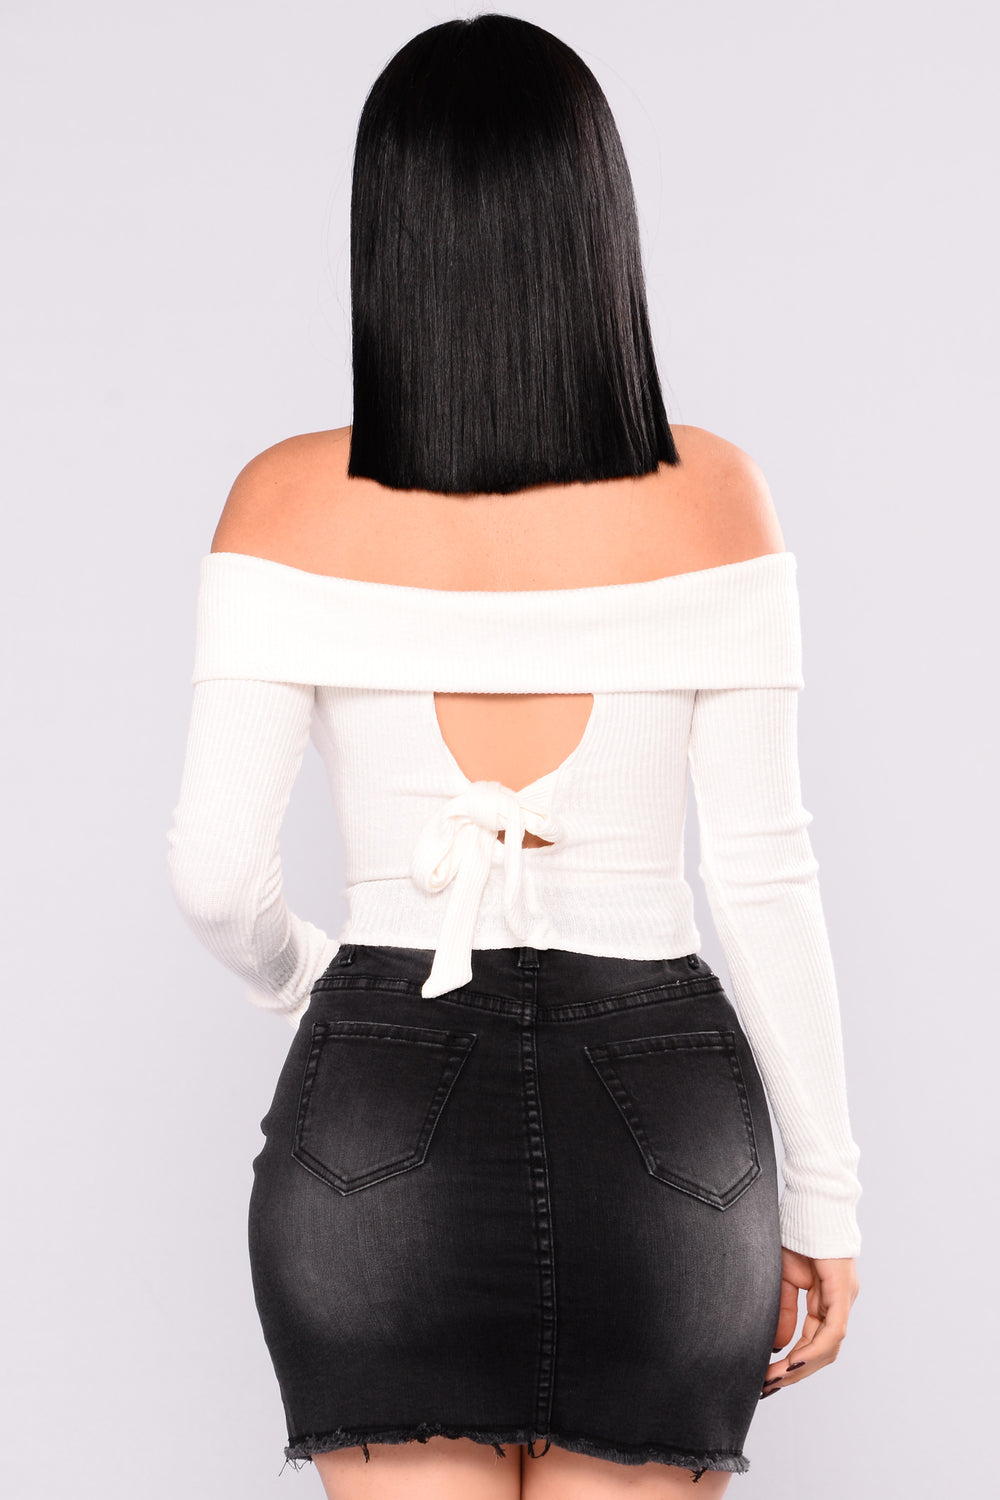 Mixed Emotions Off Shoulder Top - Ivory